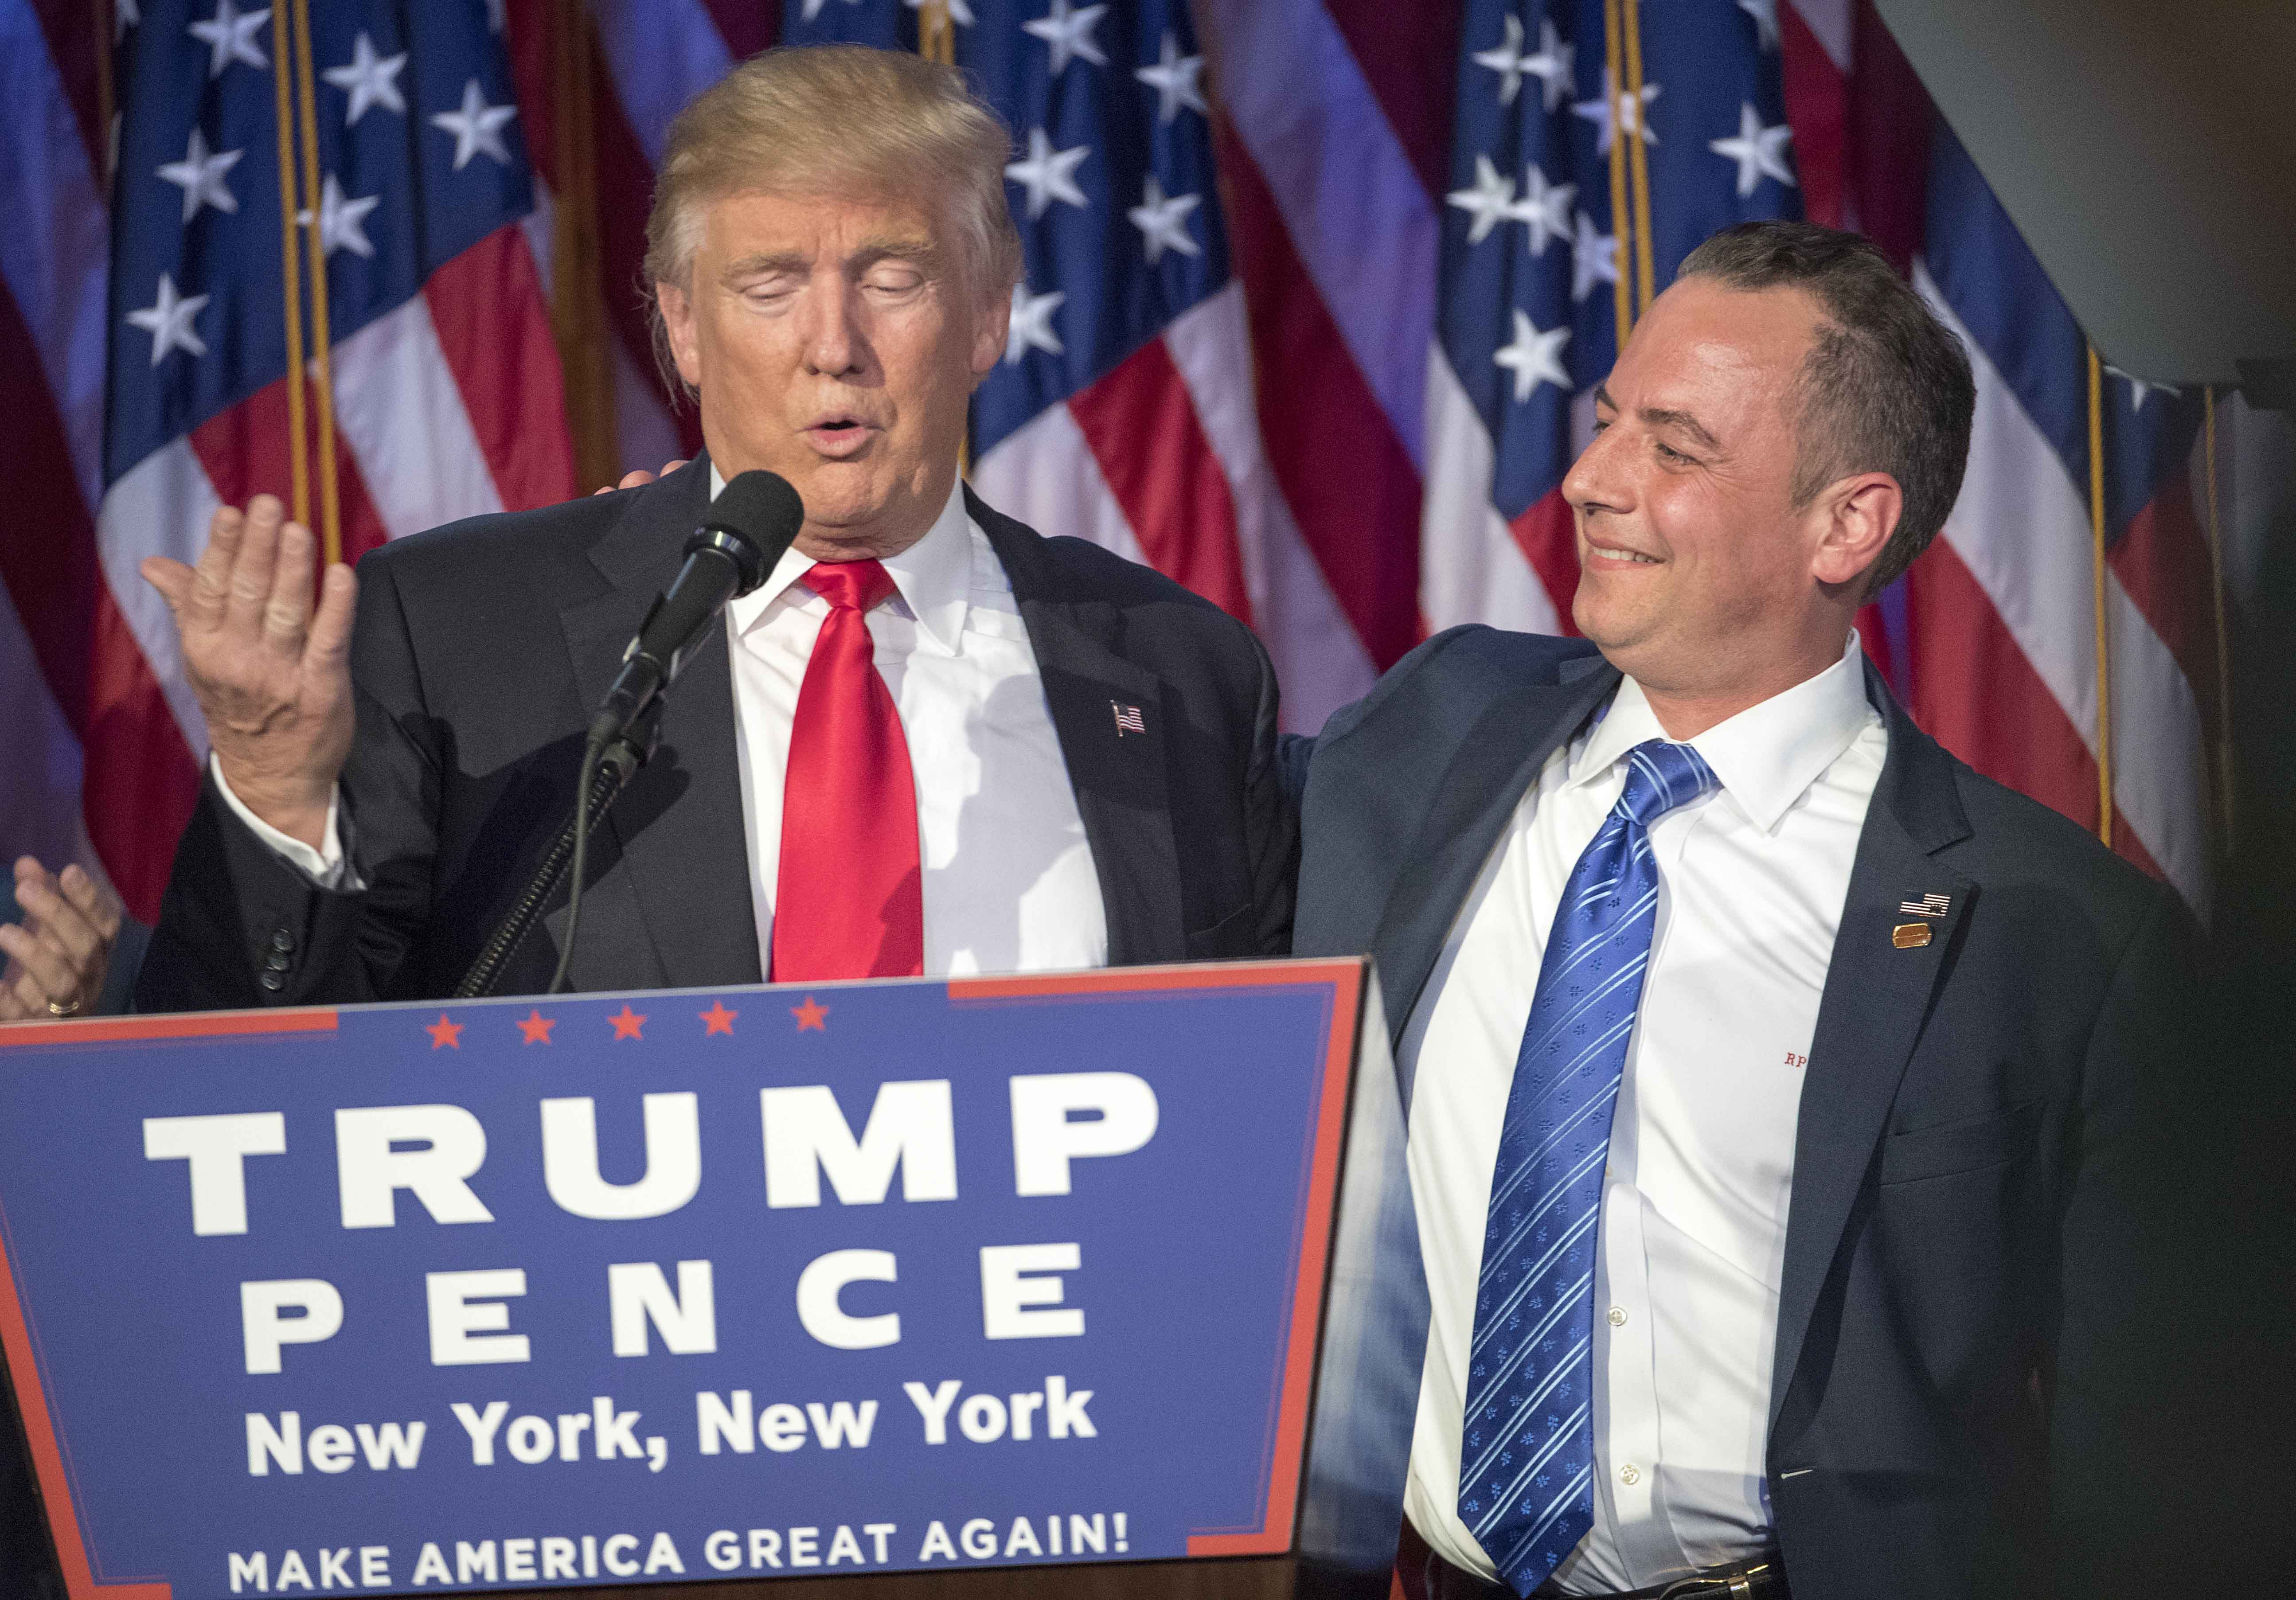 President-elect Donald Trump acknowledges the chairman of the RNC, Reince Priebus, while talking to supporters at the Election Night Party at the Hilton Midtown Hotel in New York City on Wednesday, Nov. 9, 2016. (J. Conrad Williams Jr./Newsday/TNS)